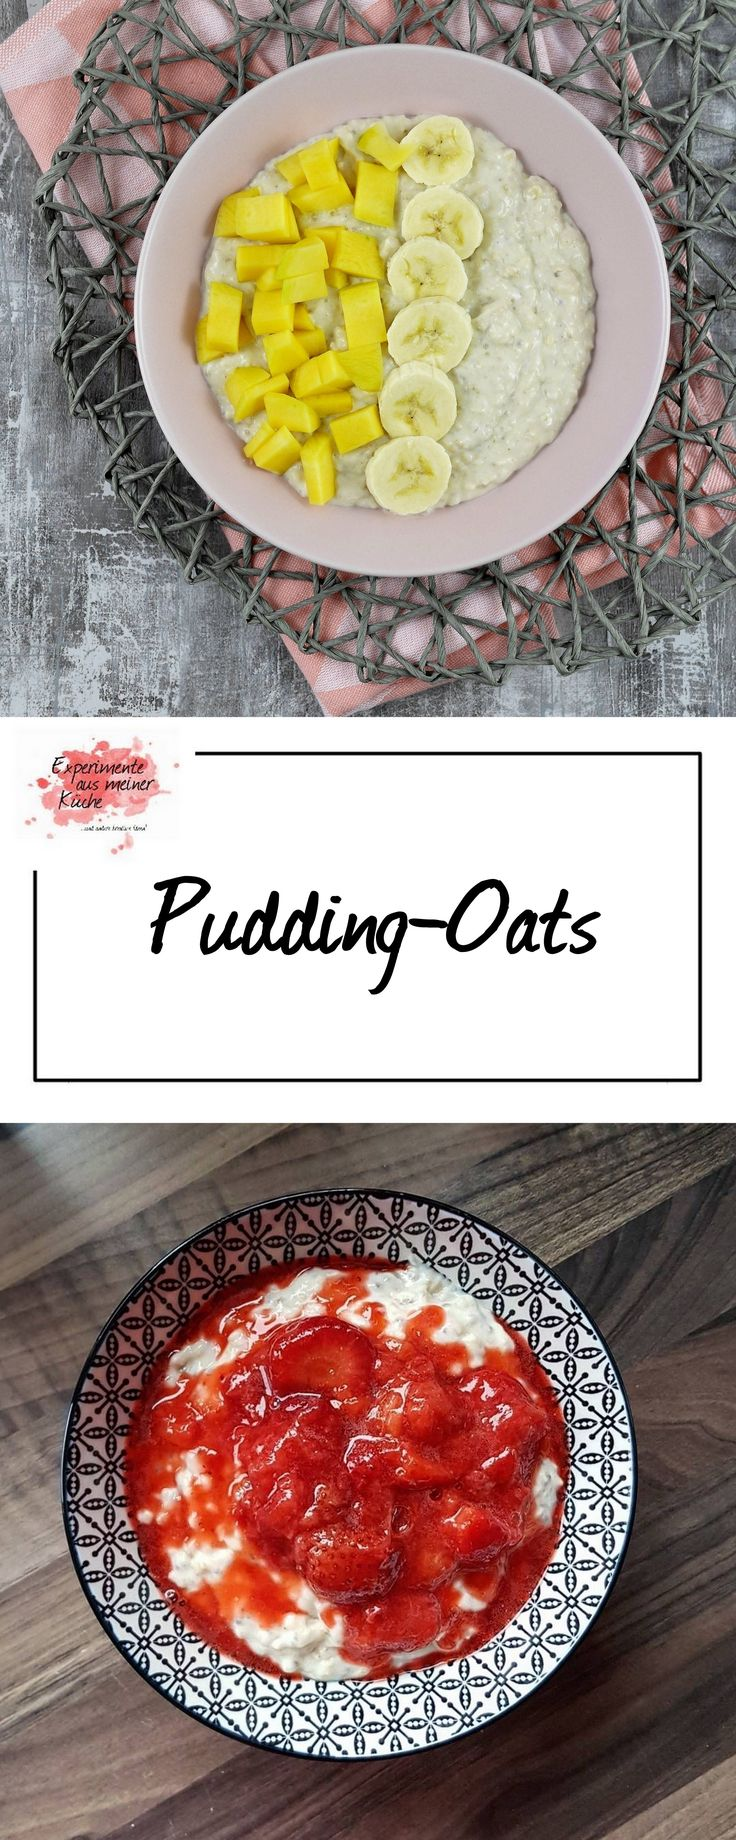 Pudding-Oats | Frühstück | Rezept | Porridge | Weight Watchers